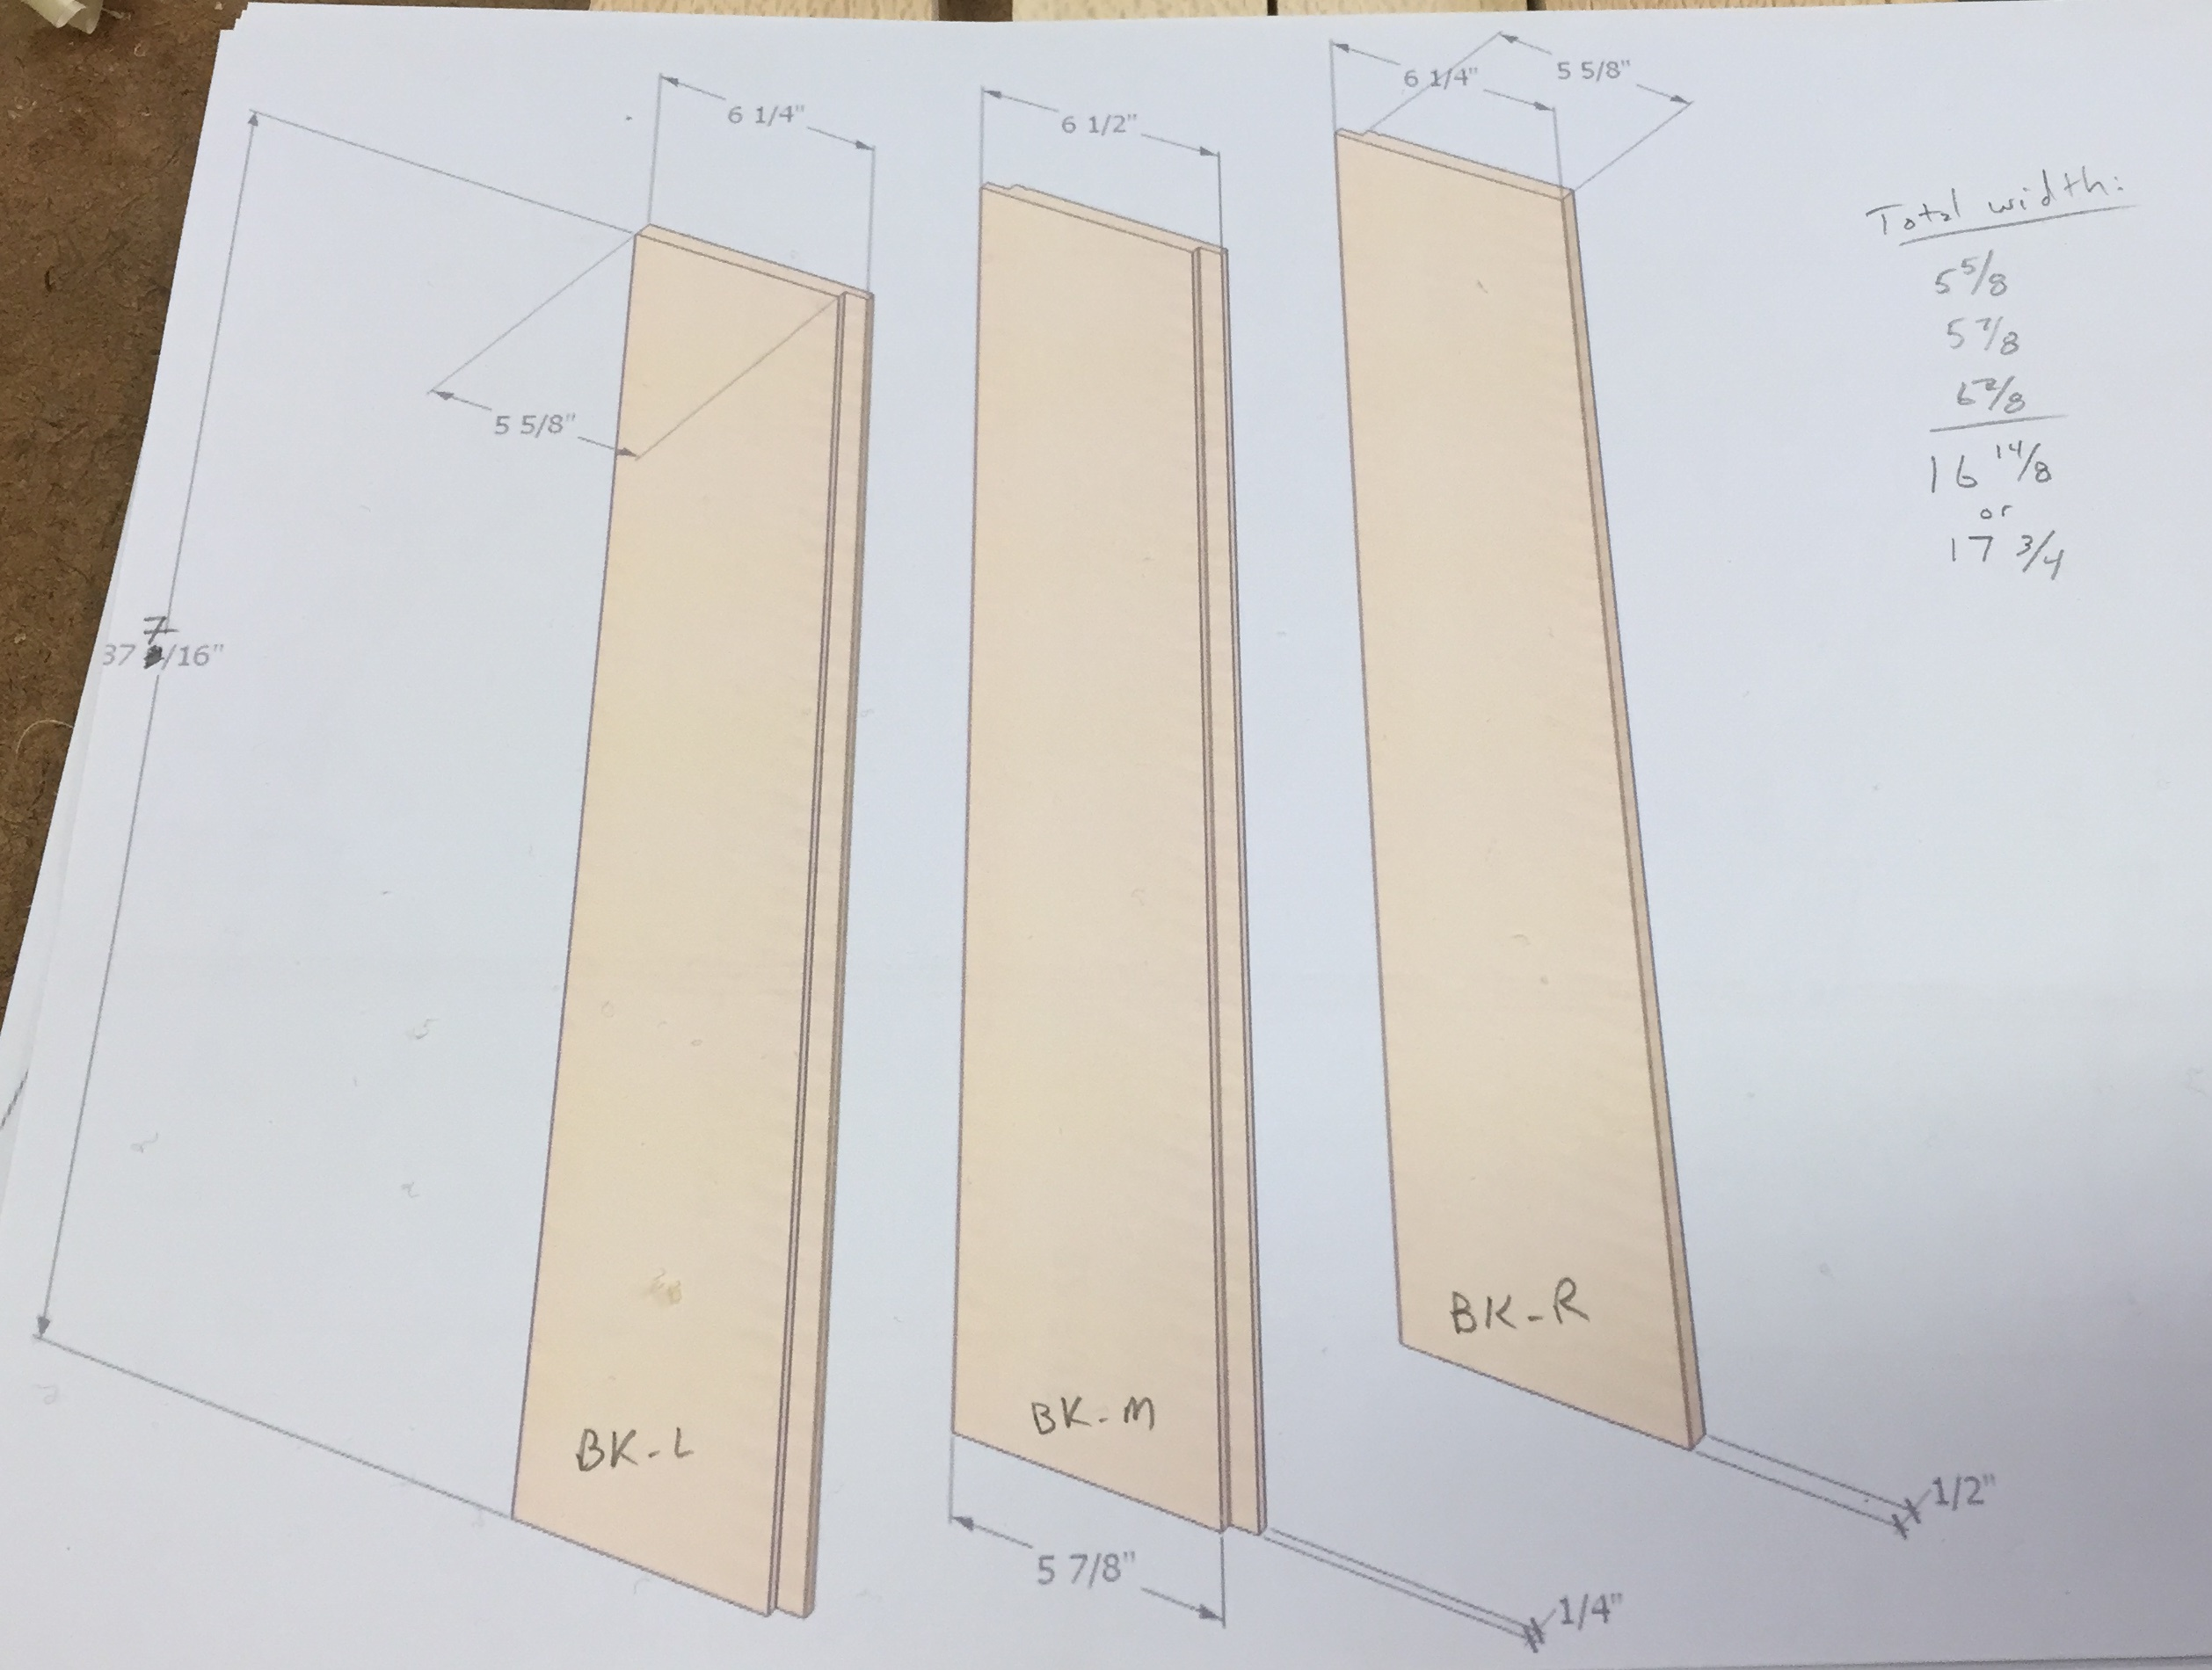 Measurements of back panel shiplapped planks, sized to fit the case